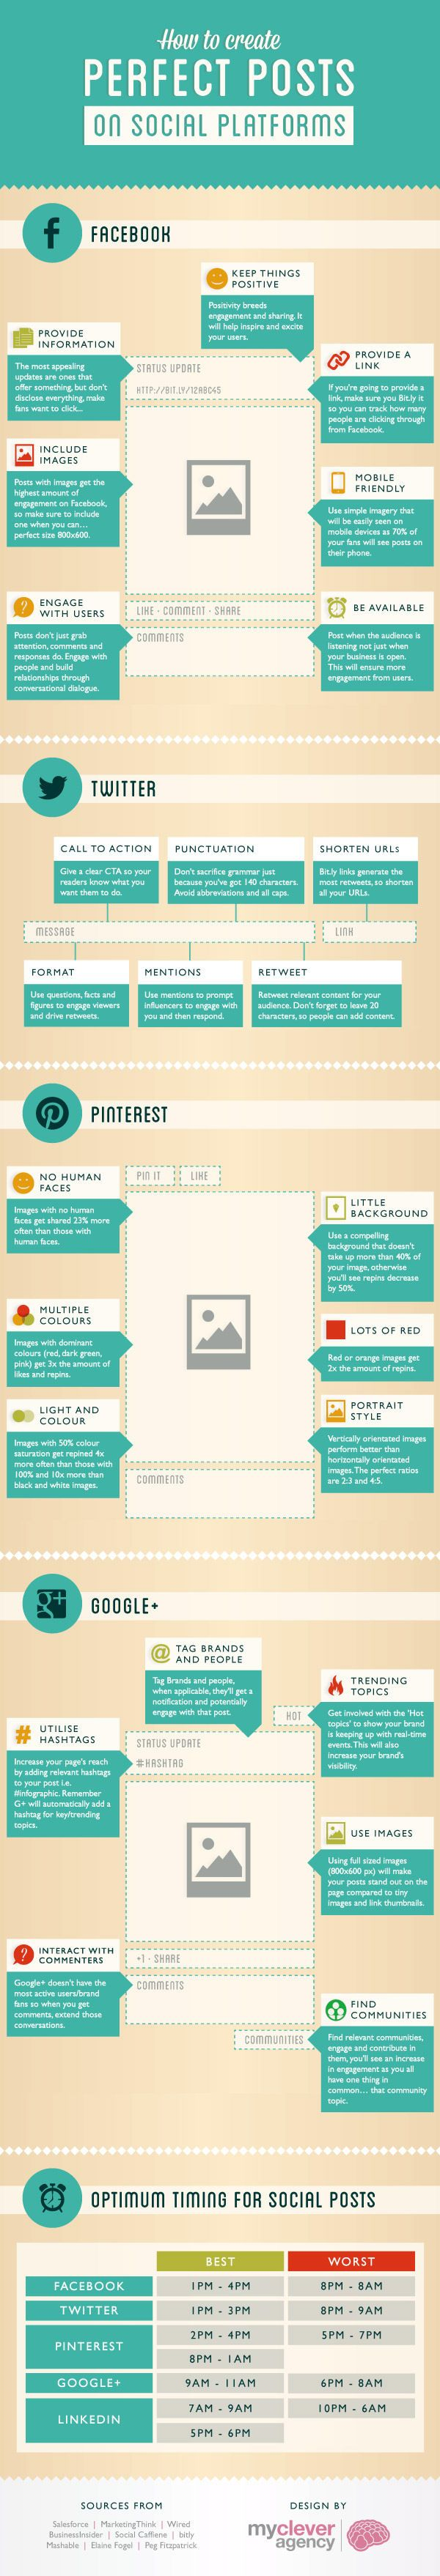 Create 'Perfect' Posts on Facebook, Twitter, Pinterest, Google+ (Infographic)